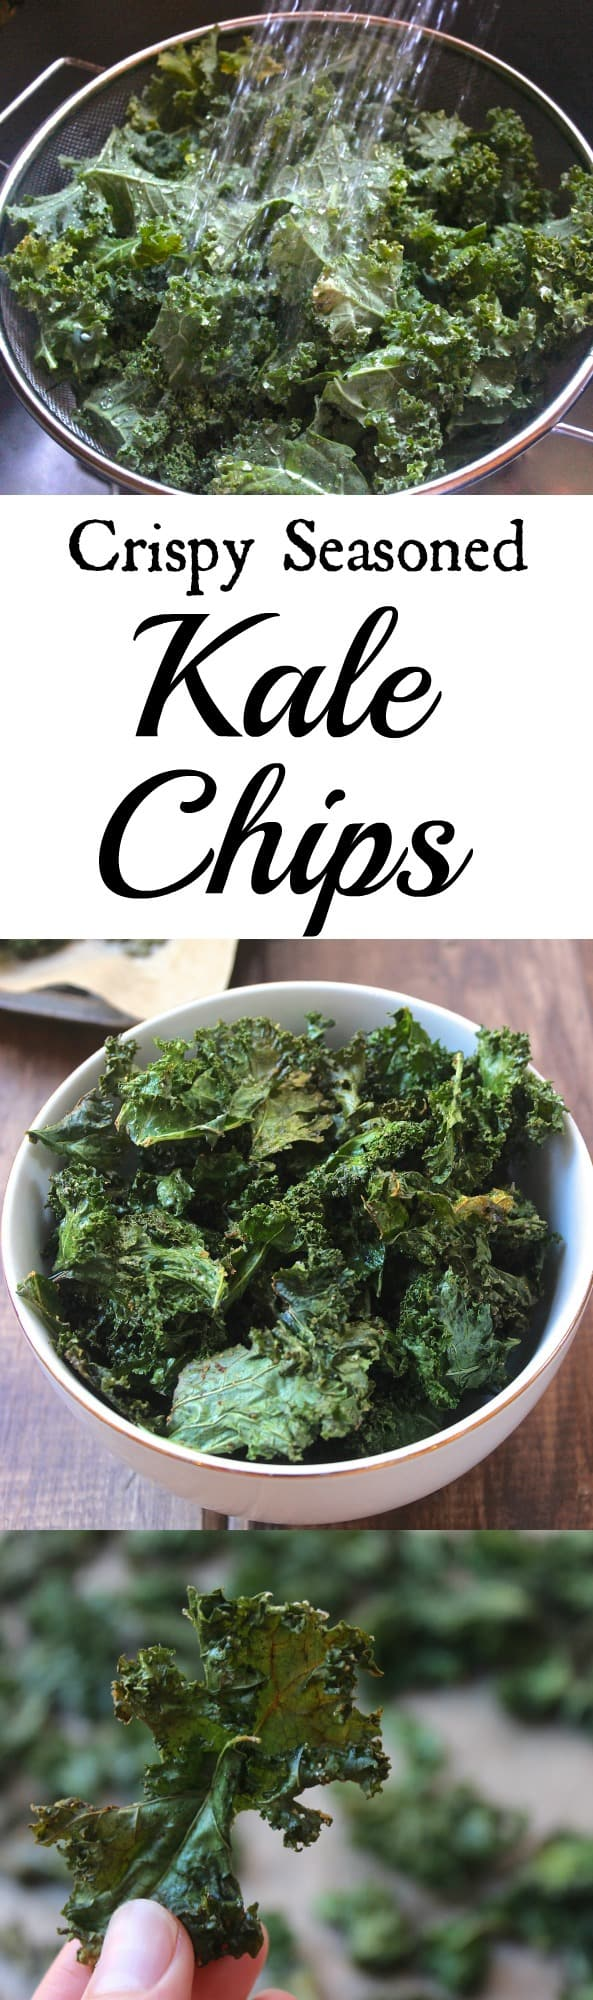 how to cook healthy kale chips